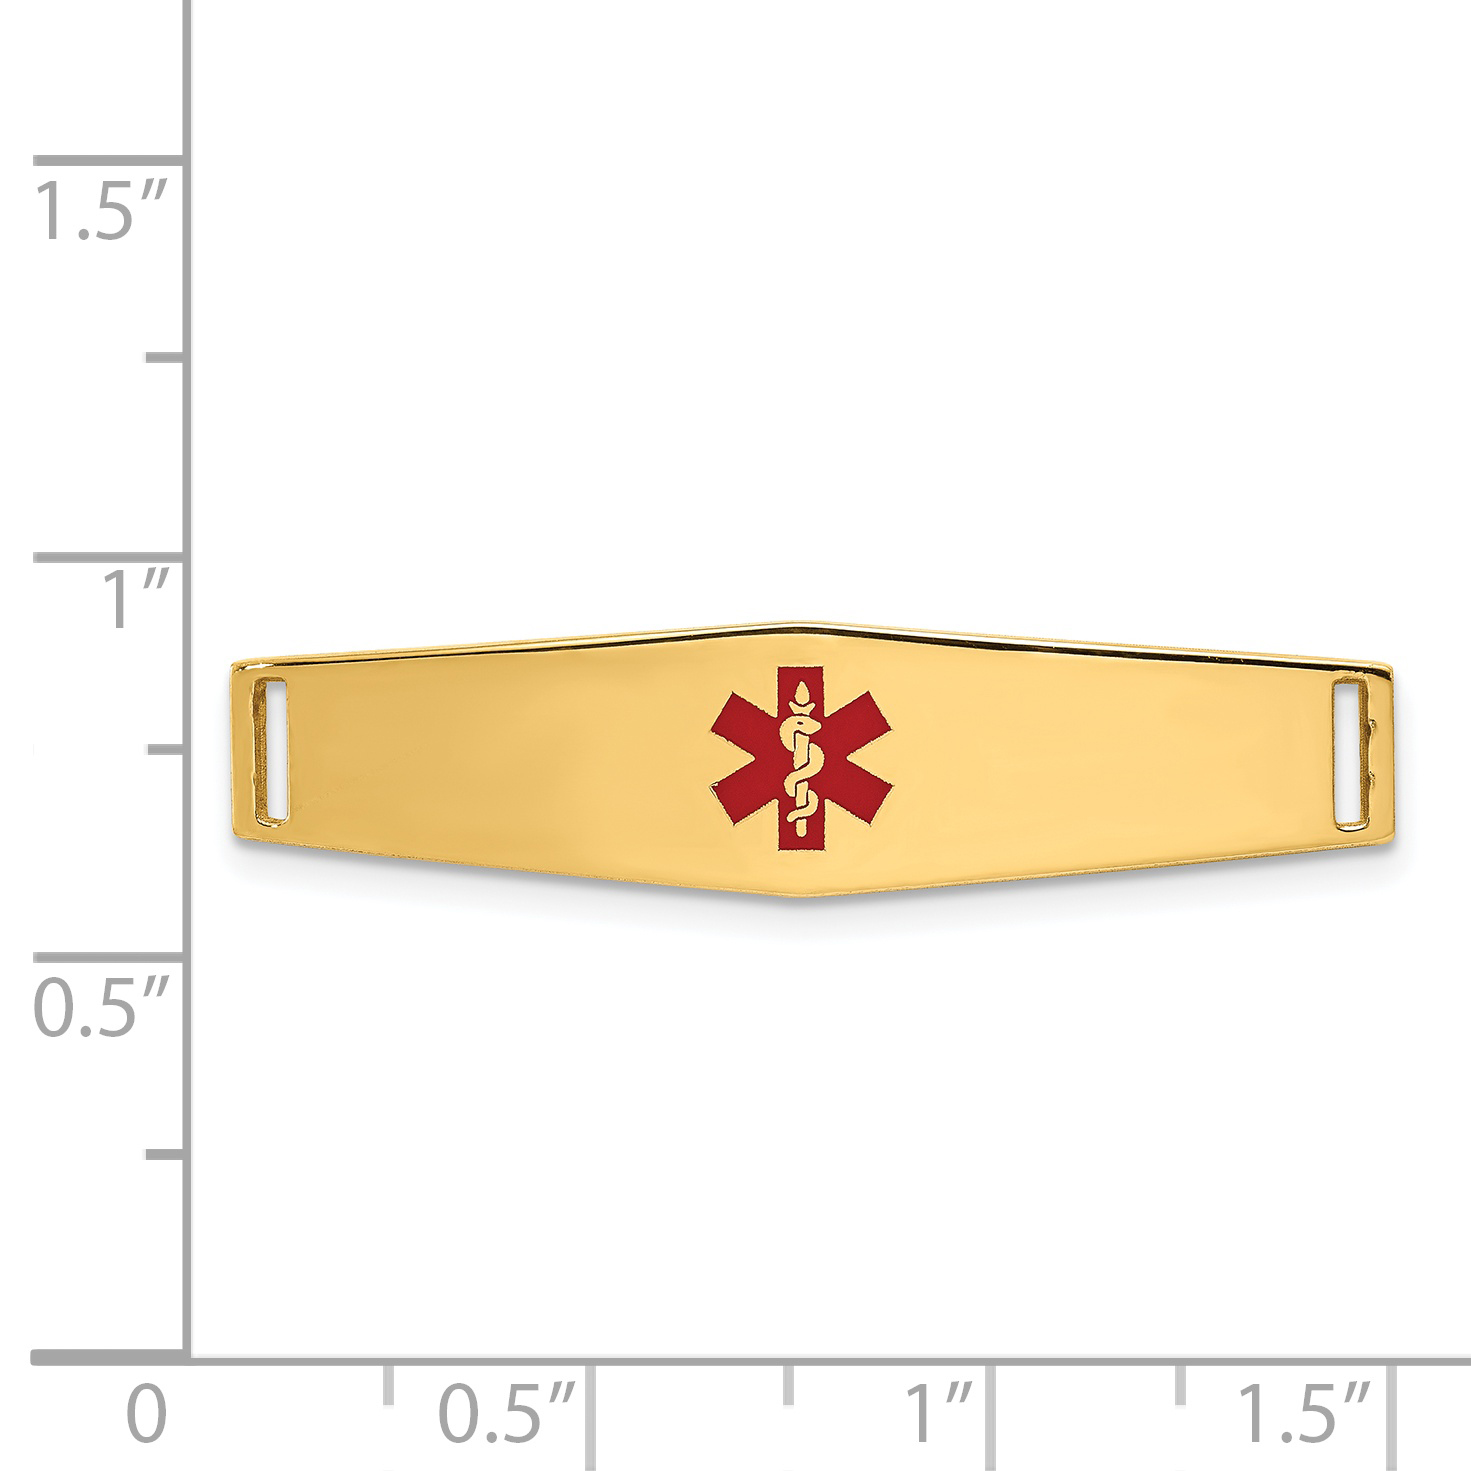 14k Yellow Gold Epoxy Enameled Medical Id Ctr Soft Plate # 817 Bracelet Fine Jewelry Gifts For Women For Her - image 1 of 2